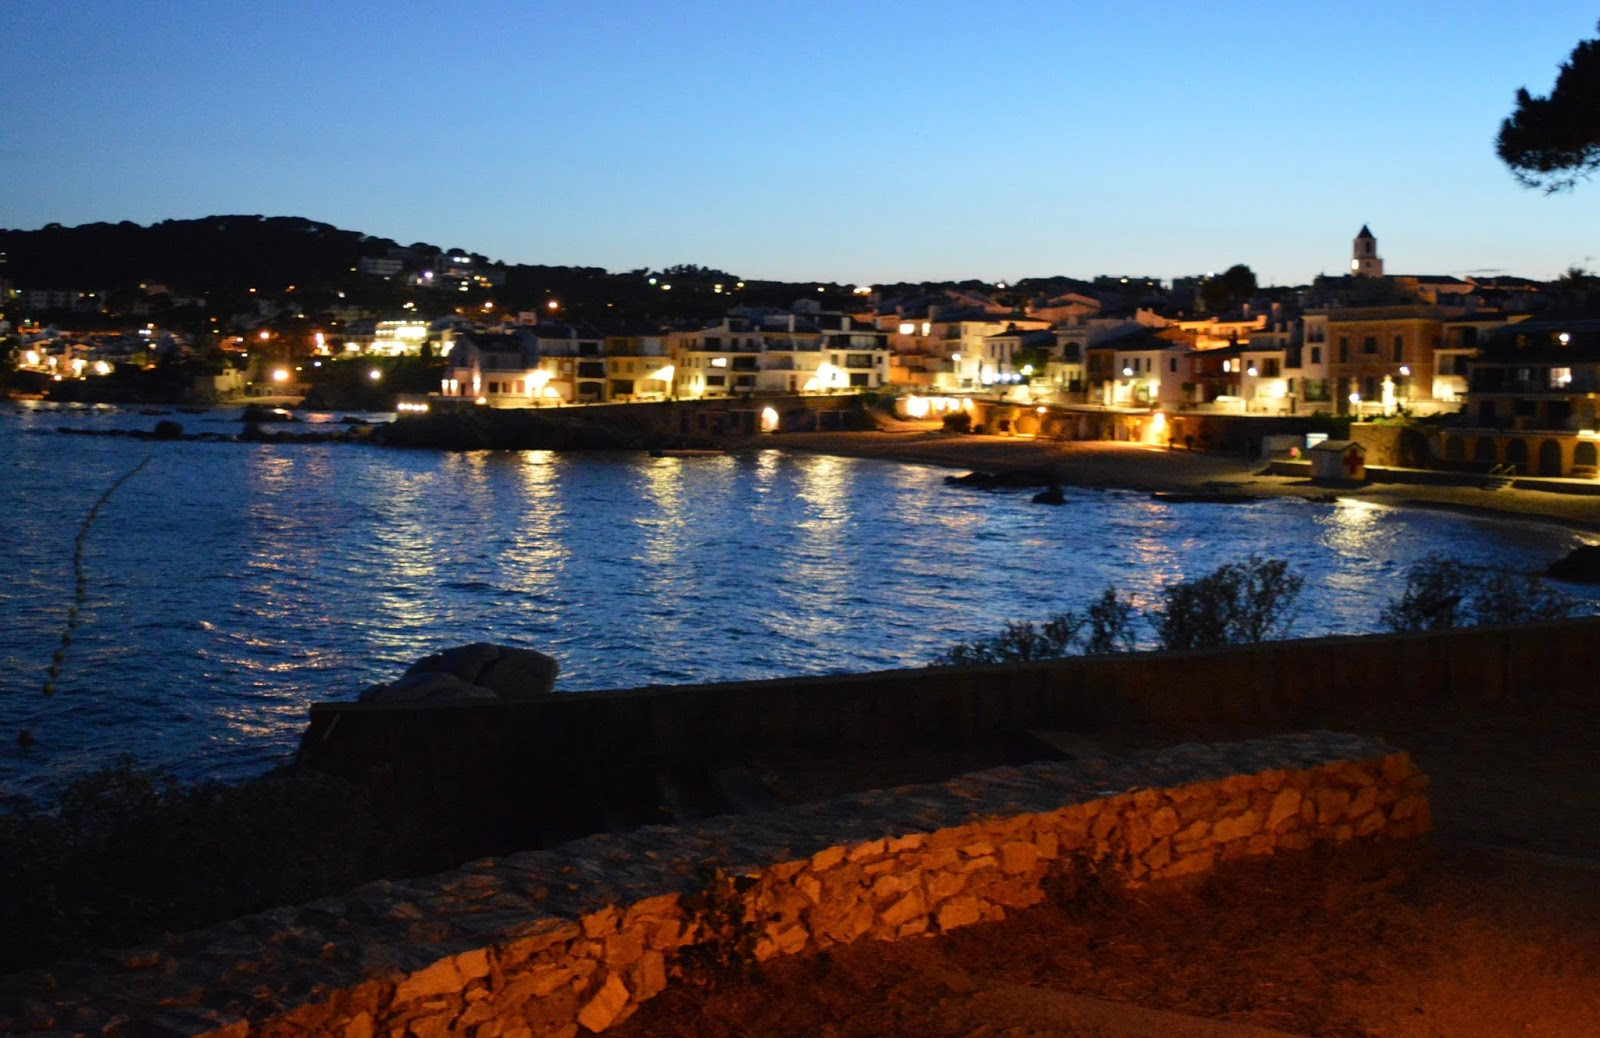 A walk from Calella de Palafrugell to Llafranc - Calella at night